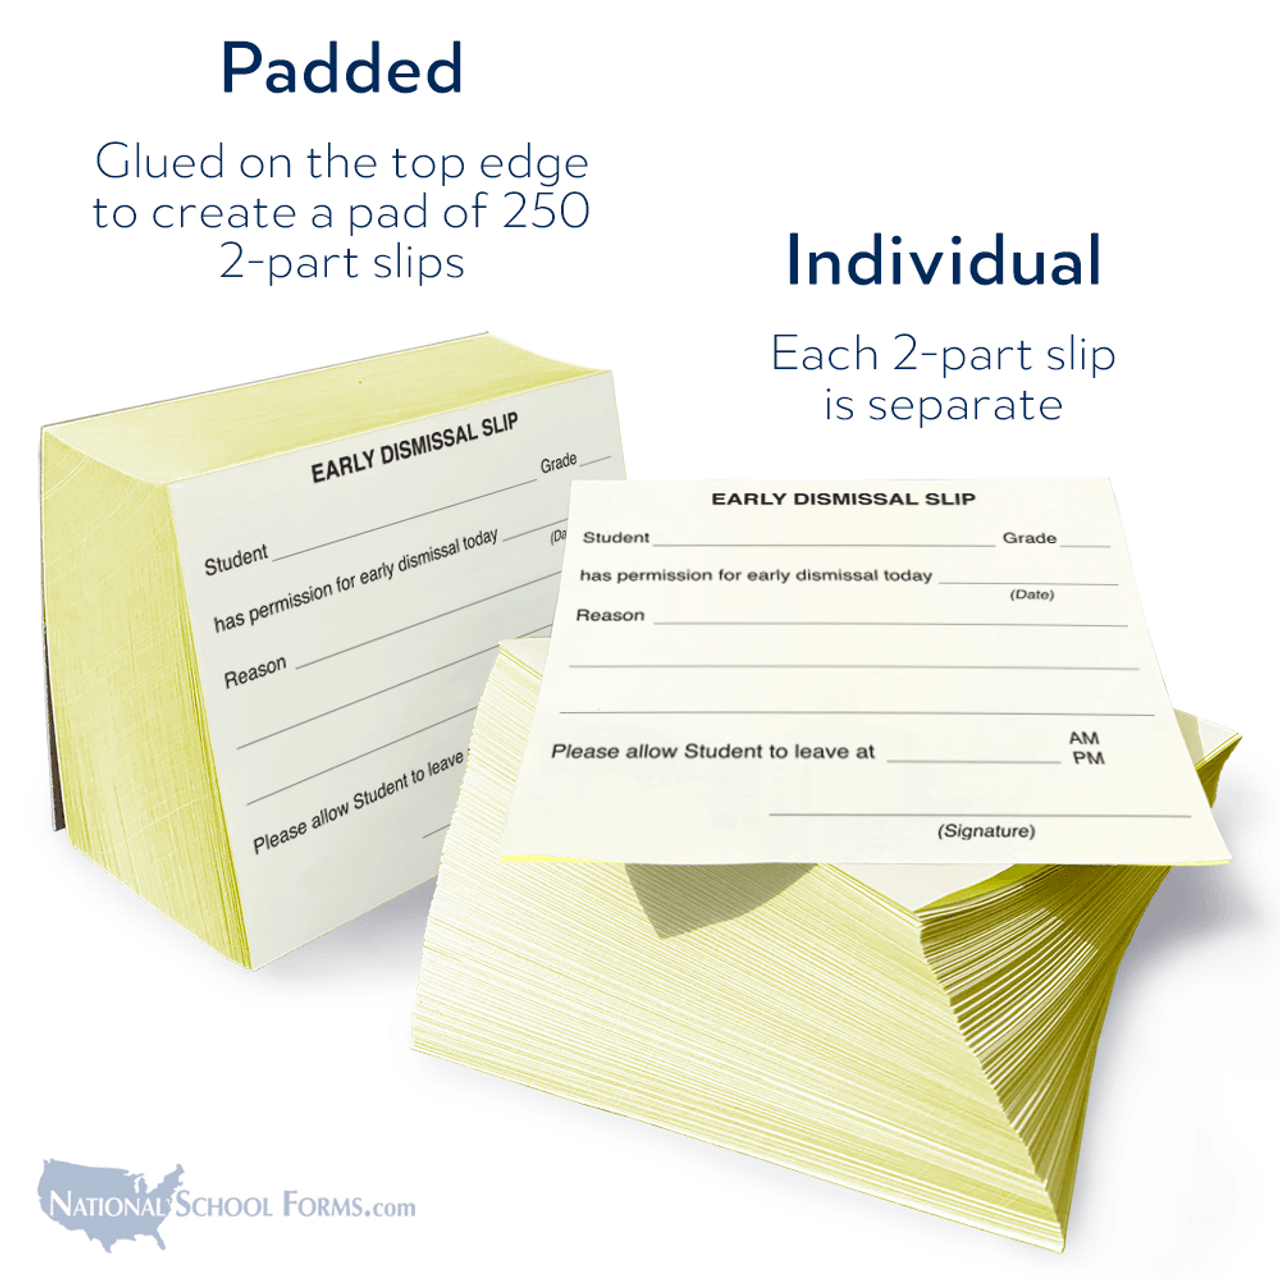 Early Dismissal Slip (148) - available slips or padded in stacks of 250.